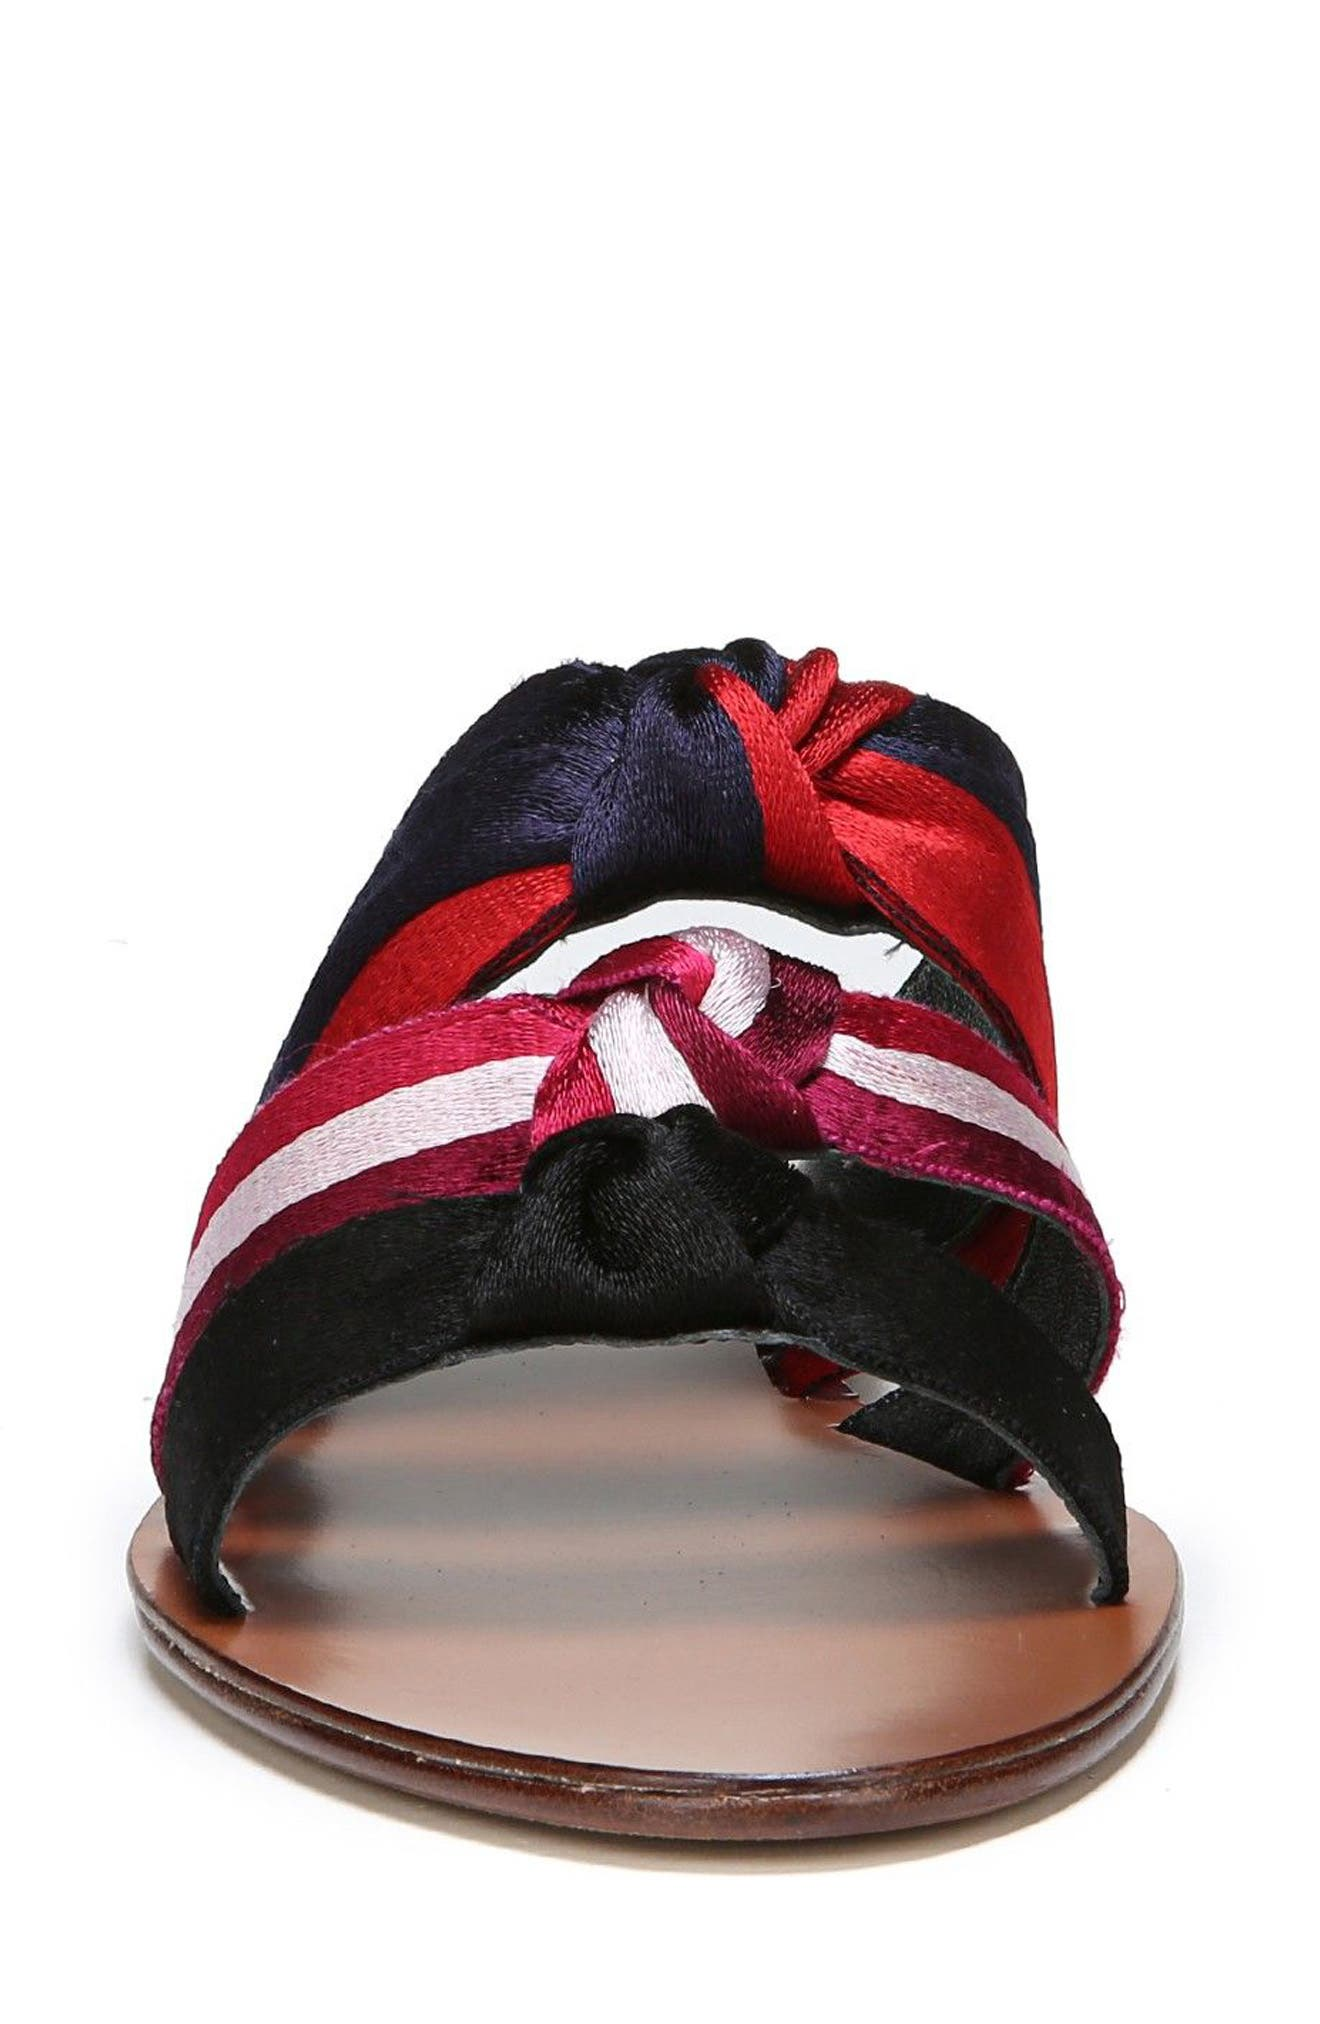 Bree Strappy Slide Sandal,                             Alternate thumbnail 4, color,                             Black/ Lipstick/ Navy